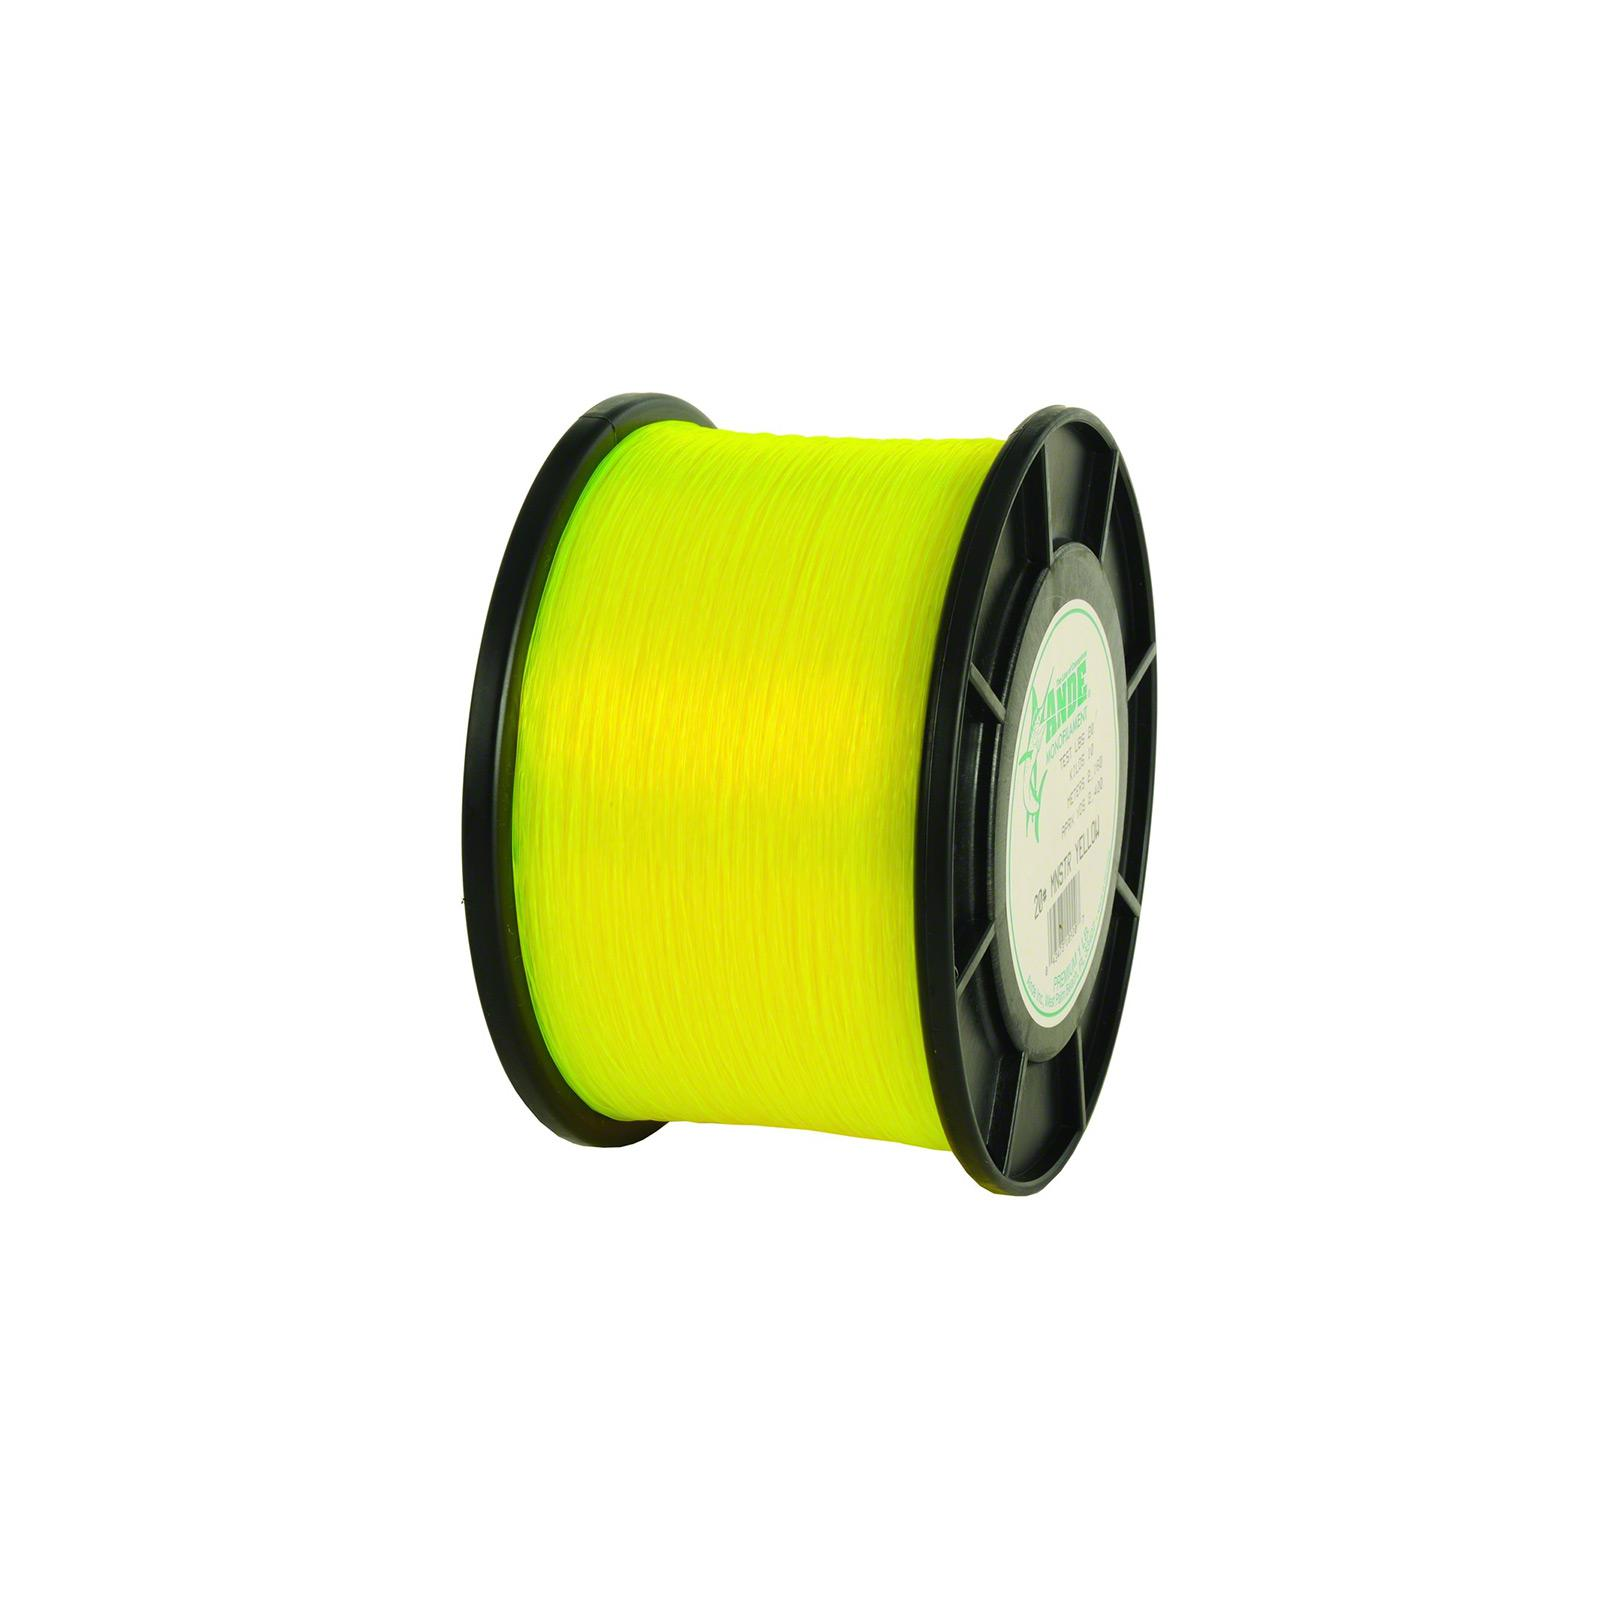 Ande Monofilament Monster Yellow 1Lb Spool 50Lb Test, MY0...